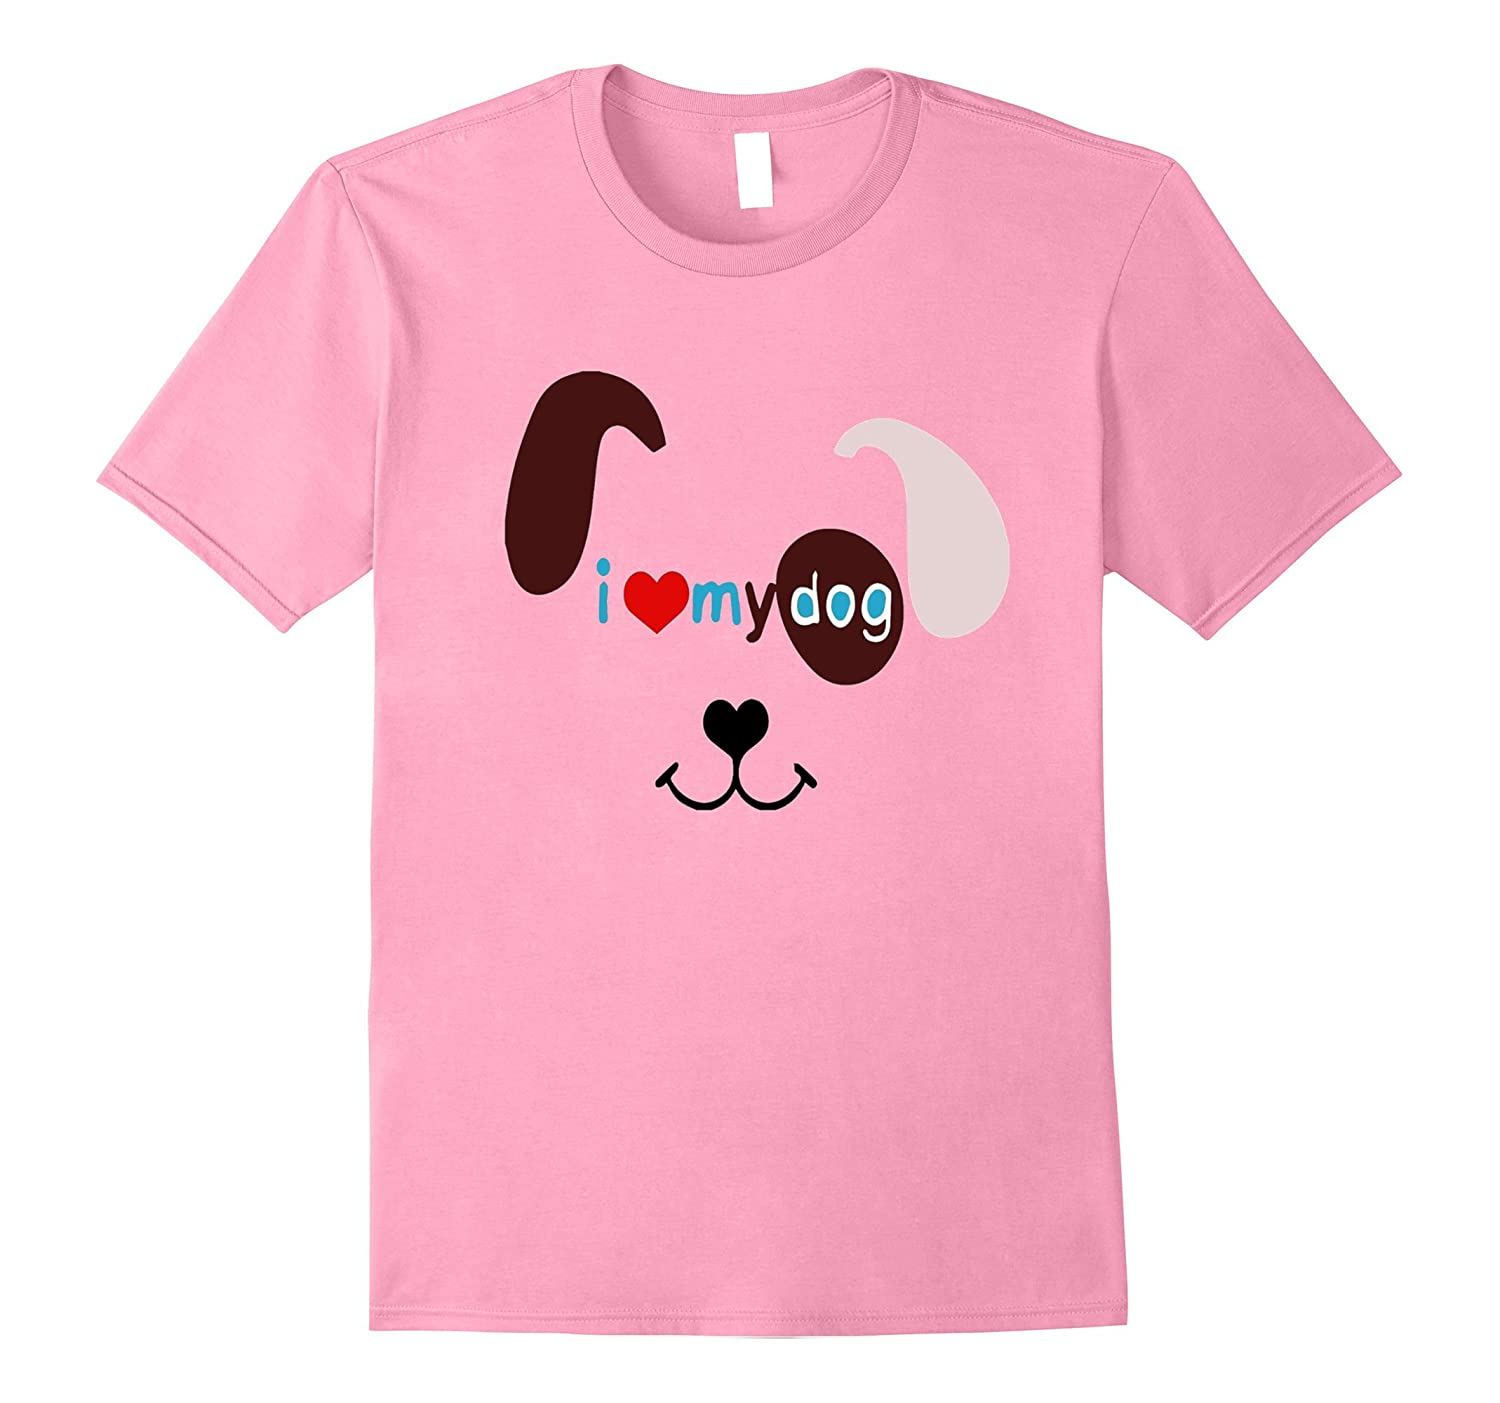 I LOVE MY DOG T-Shirt for Girls, Boys,Teens, Men & Women-AZP